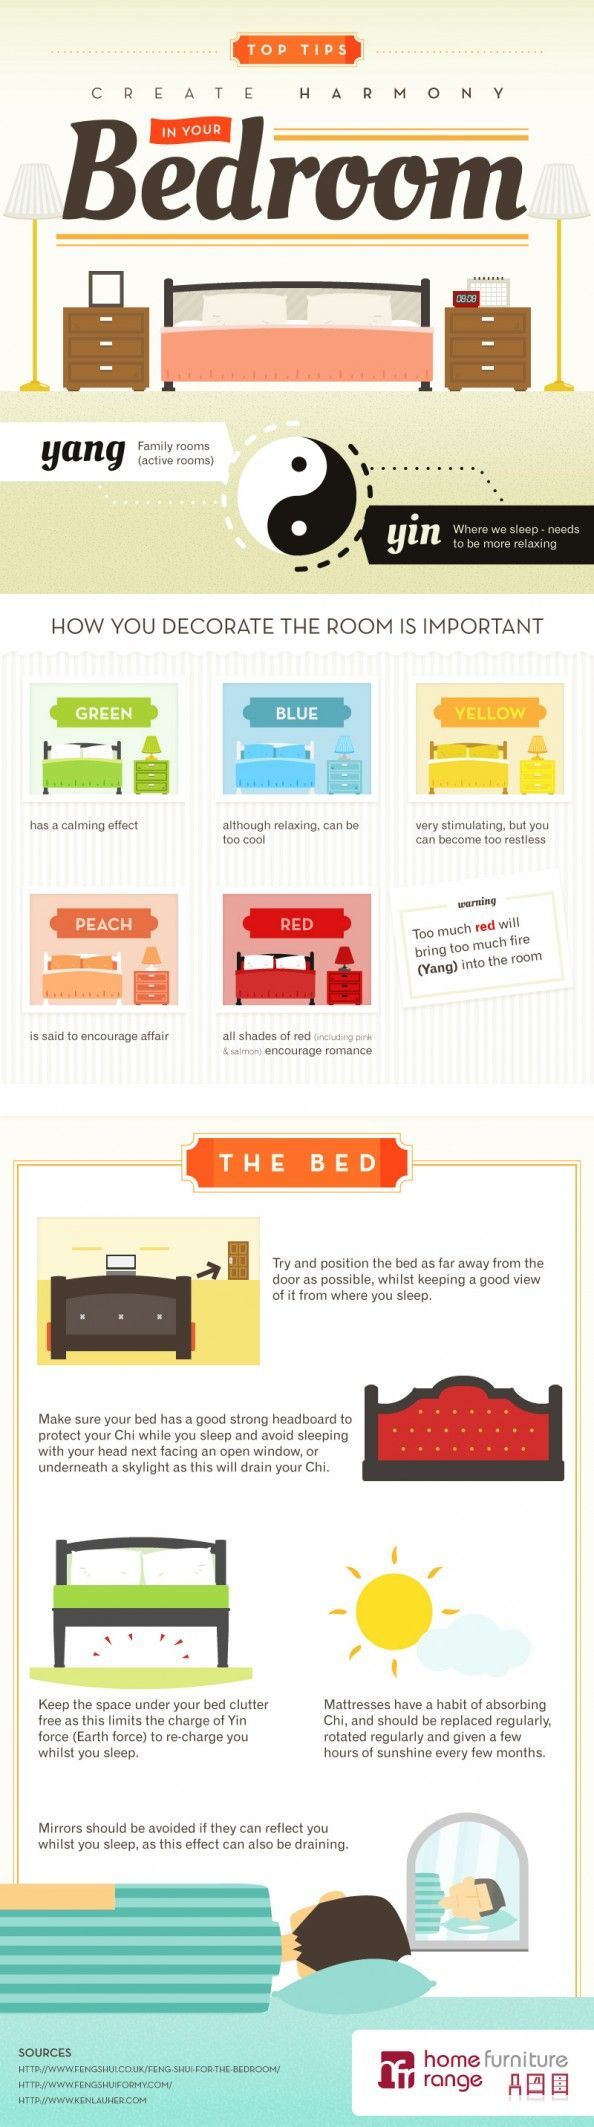 How To Create Harmony In Your Bedroom Fengshui